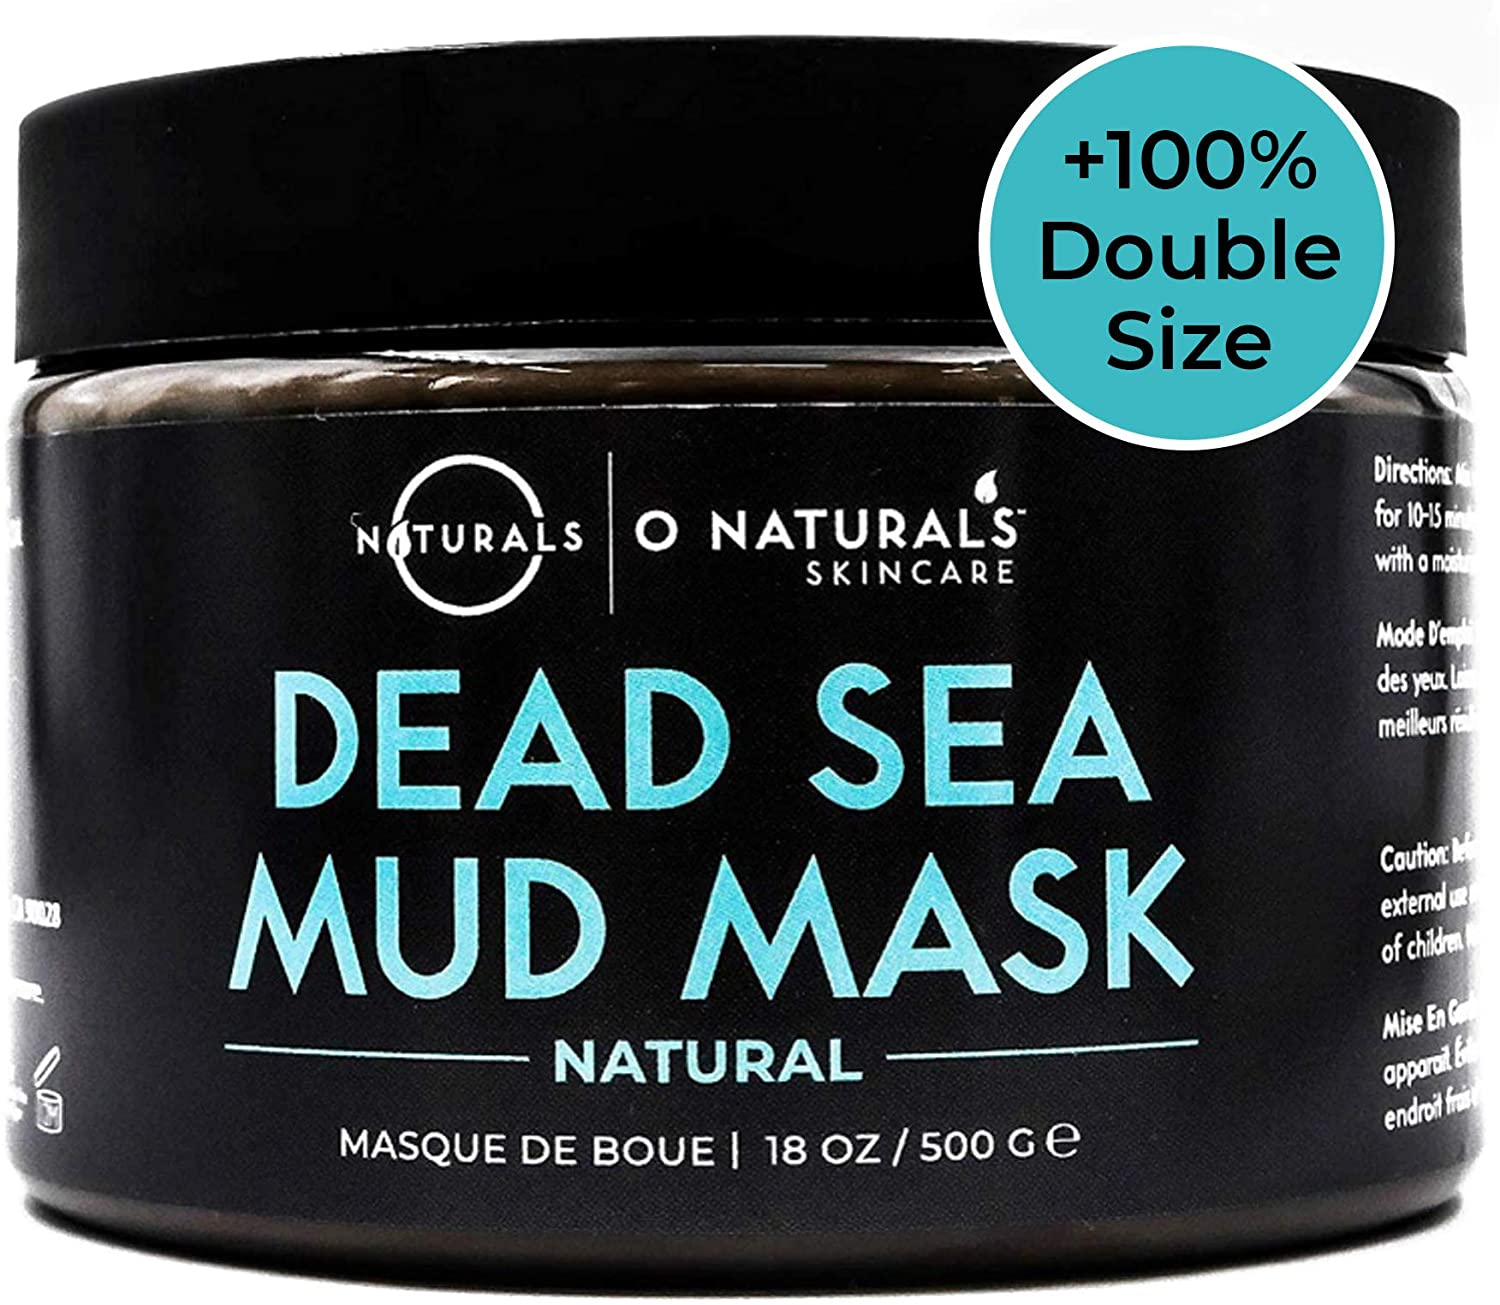 Dead Sea Mud Mask for Face & Body. Best Acne Treatment Organic Deep Pore Minimizer Face Mask & Cleansing Pore Vacuum for Oily Skin Blackhead Remover Healing Exfoliating Skin Care for Men & Women 500gr